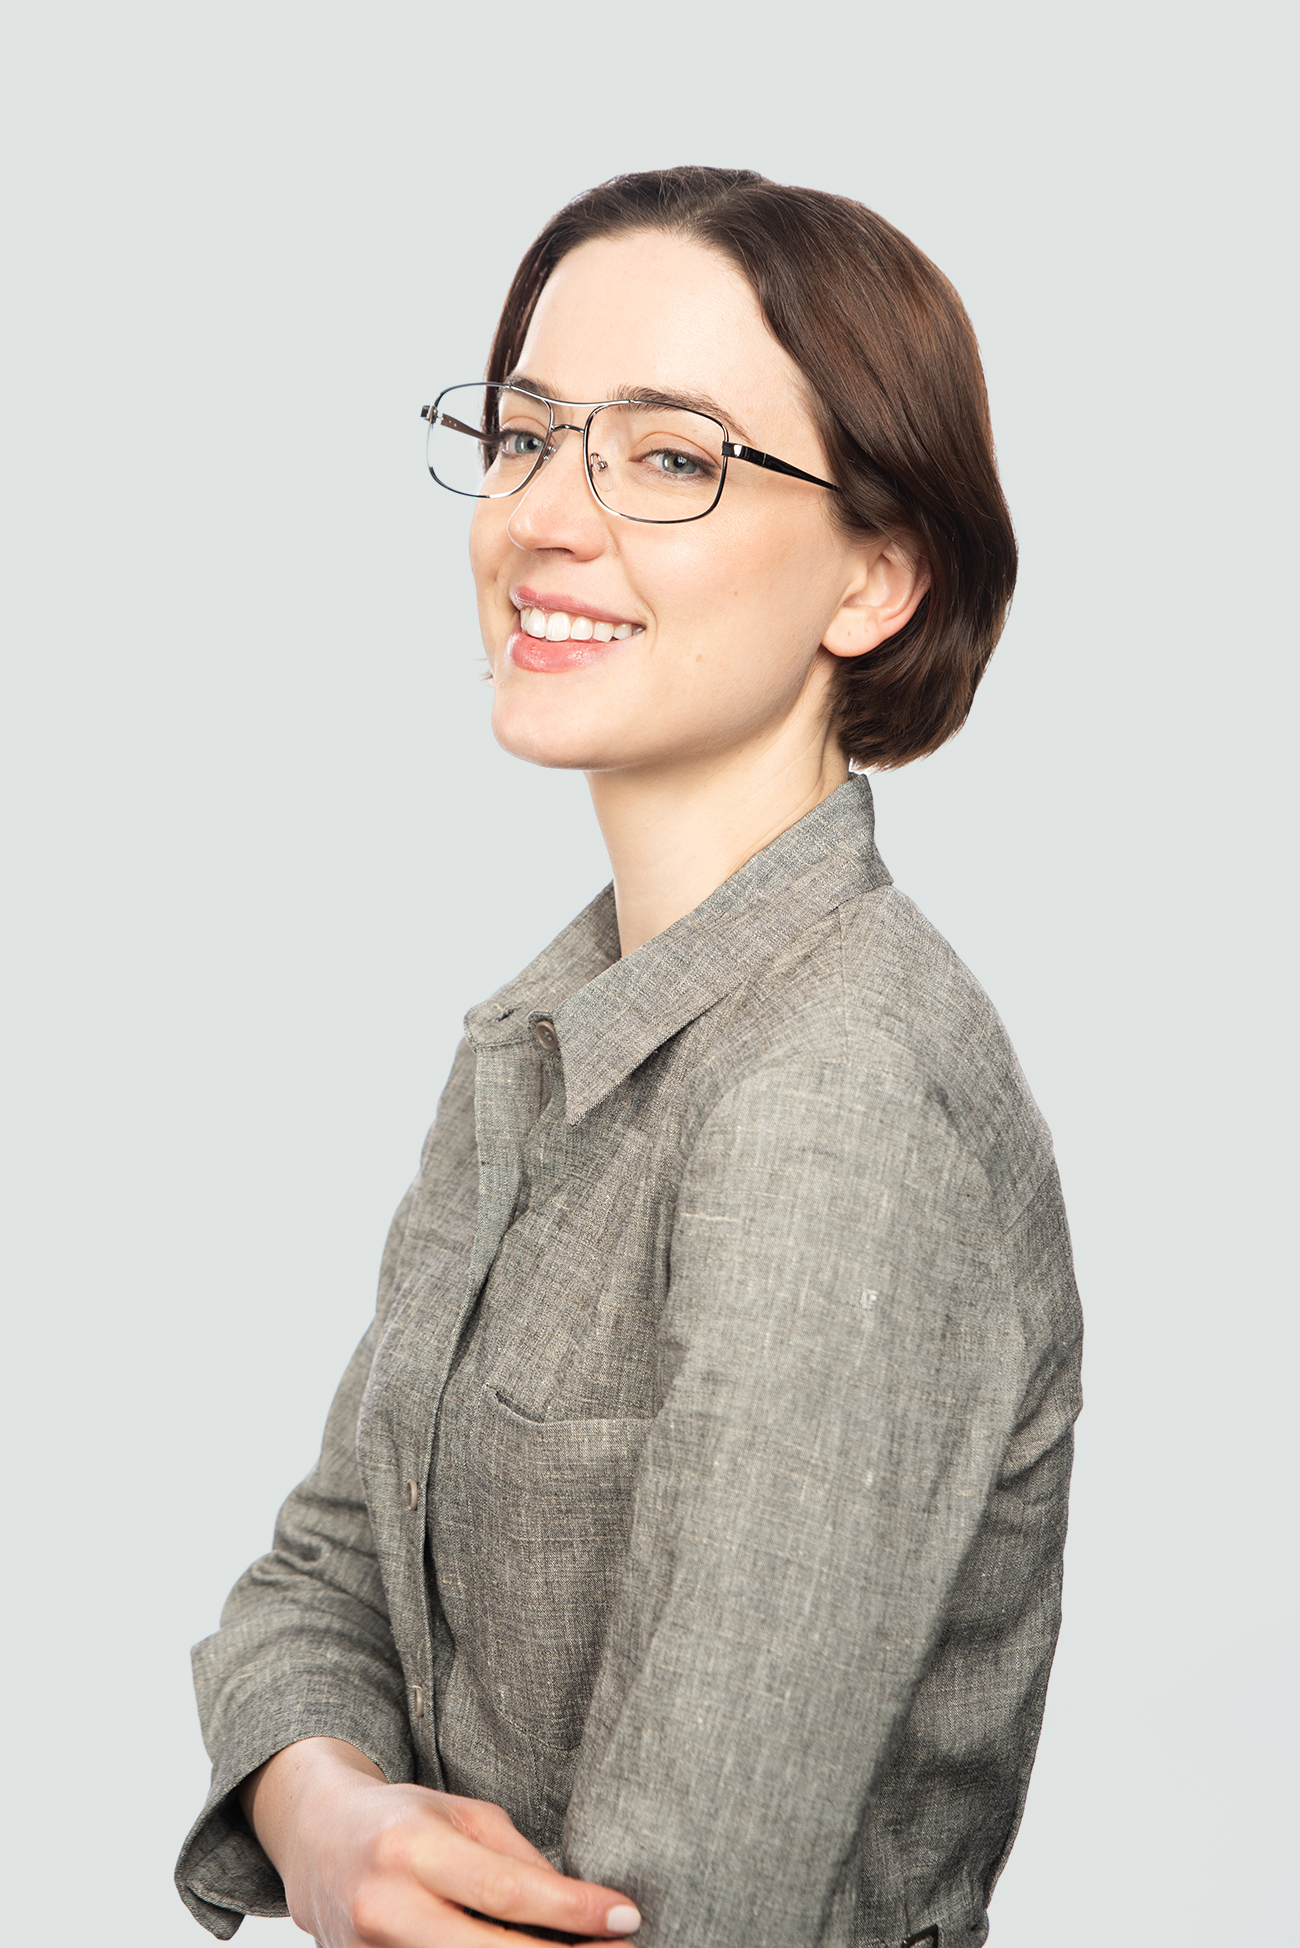 brunette woman wearing metal glasses